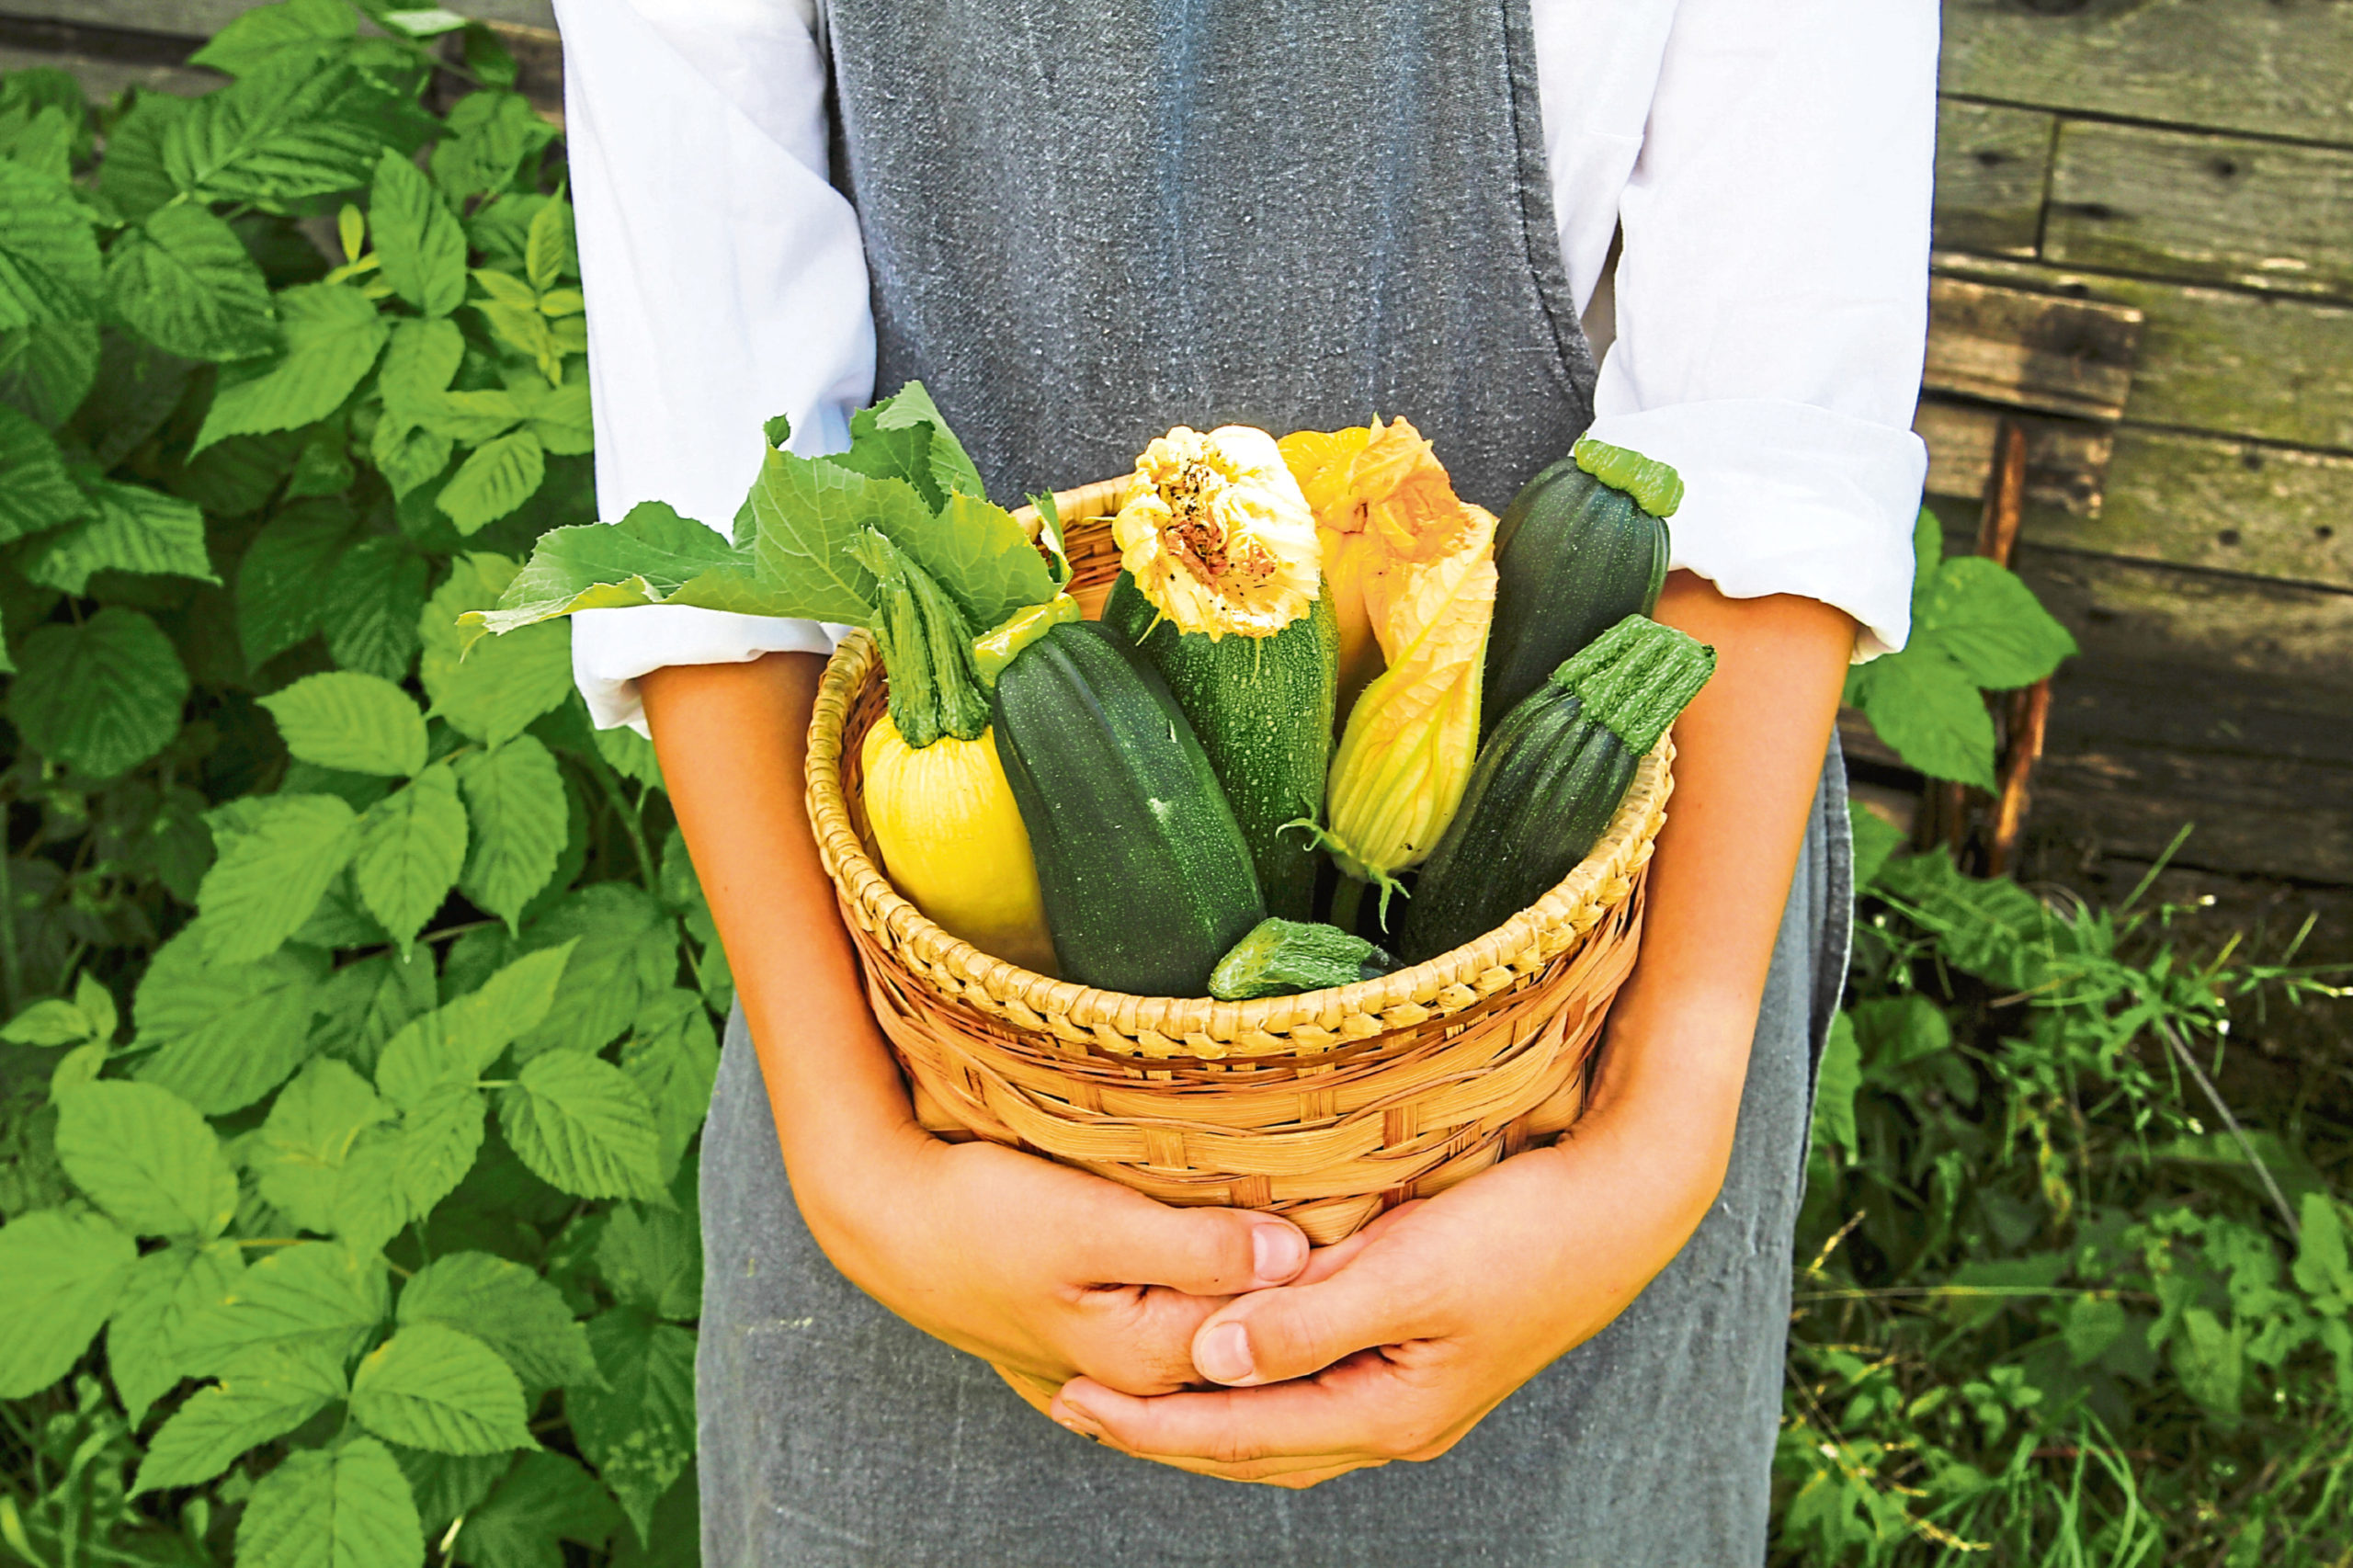 Take care of growing plants now for a great courgette  harvest later